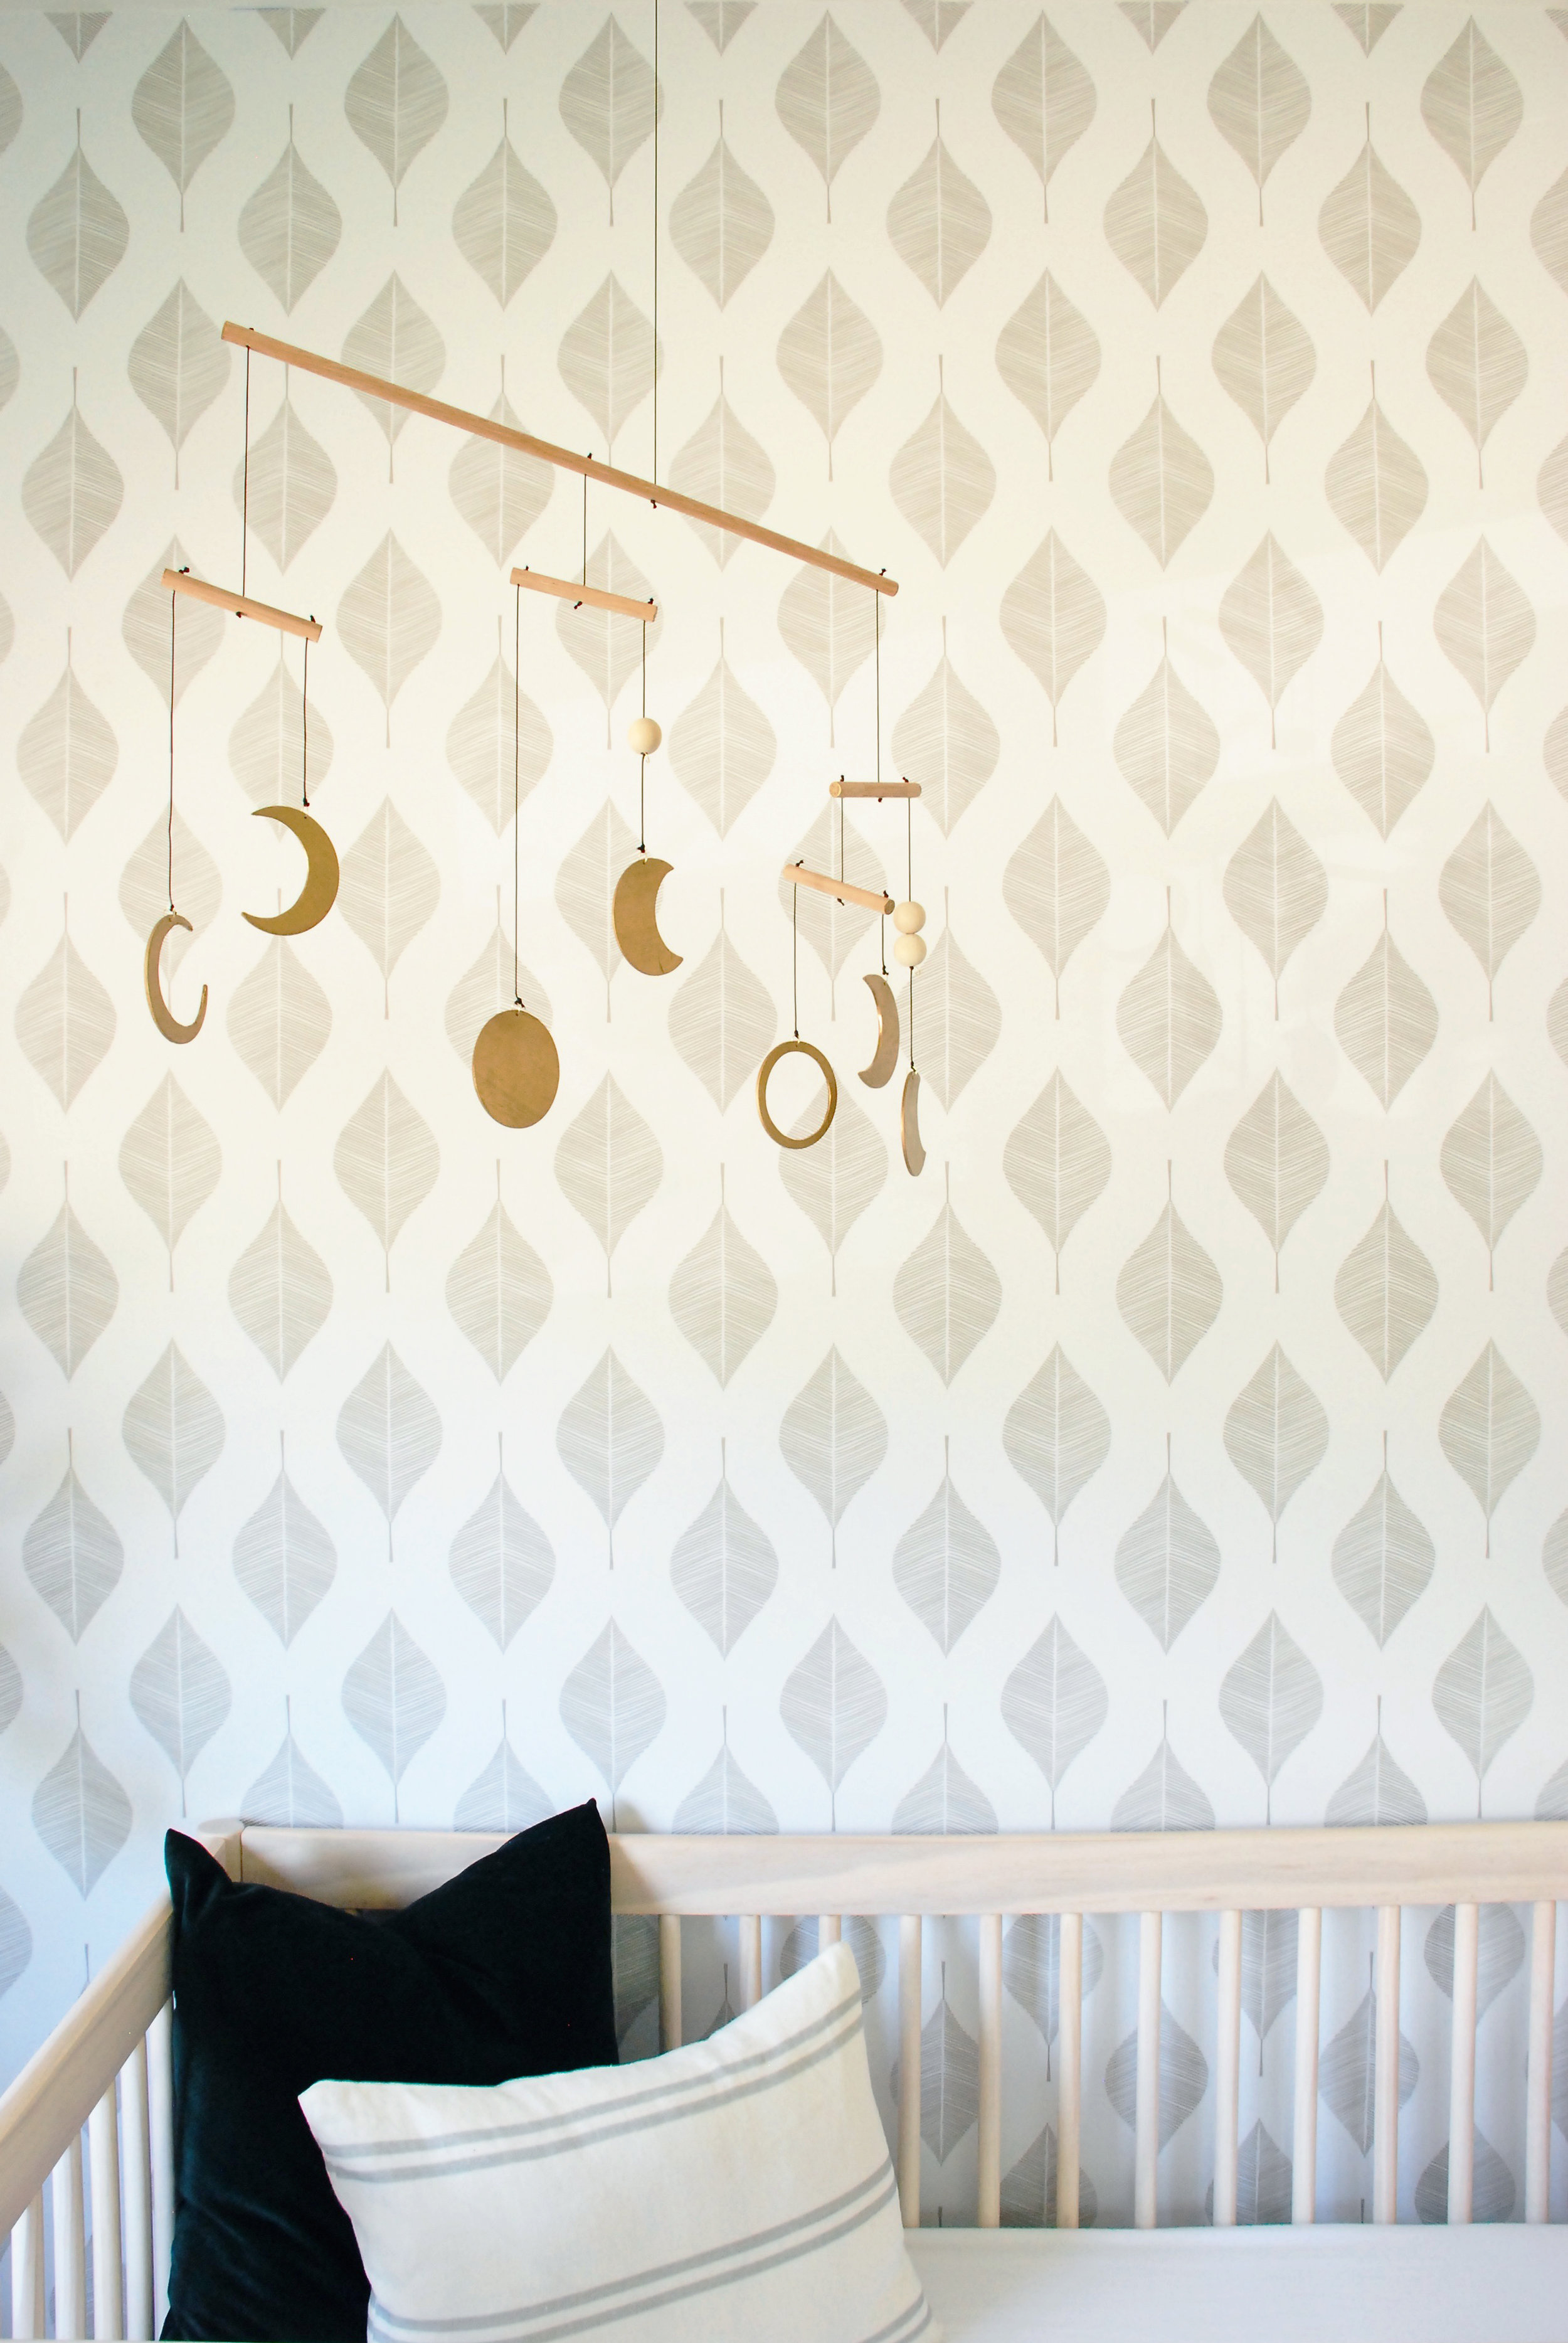 Gender neutral nursery by Stay Interiors